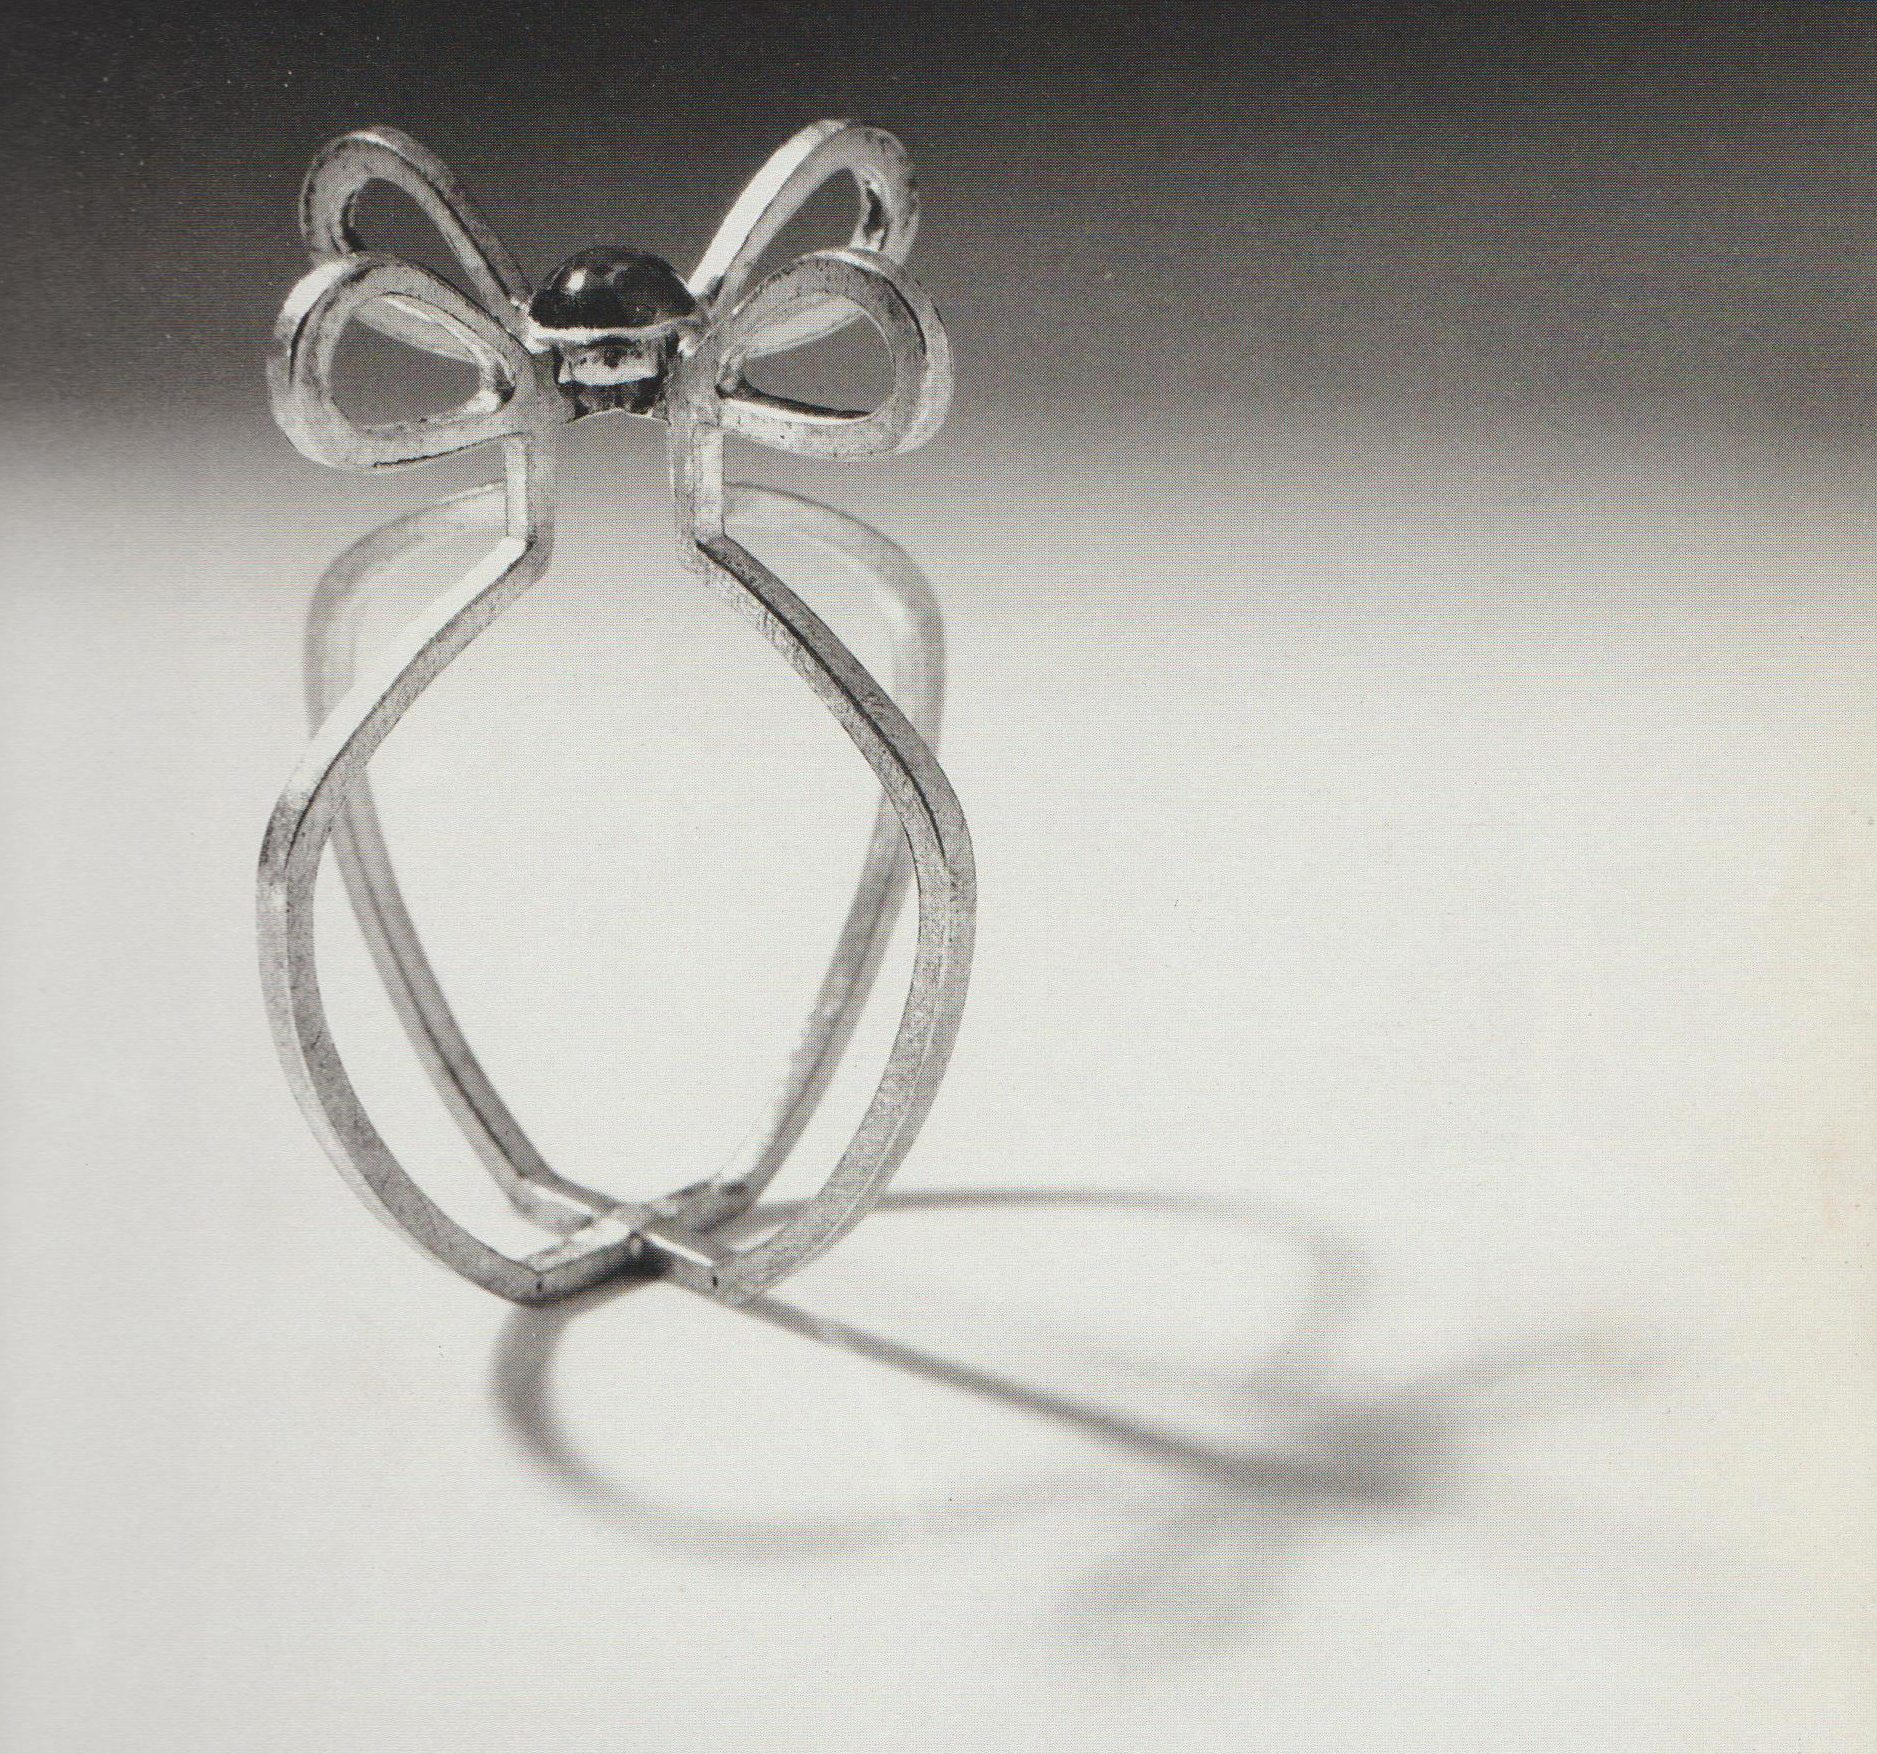 Francesca di Ciaula, Little Flower's Vase, ring, 1988. Collectie Museum Arnhem, zilver, saffier